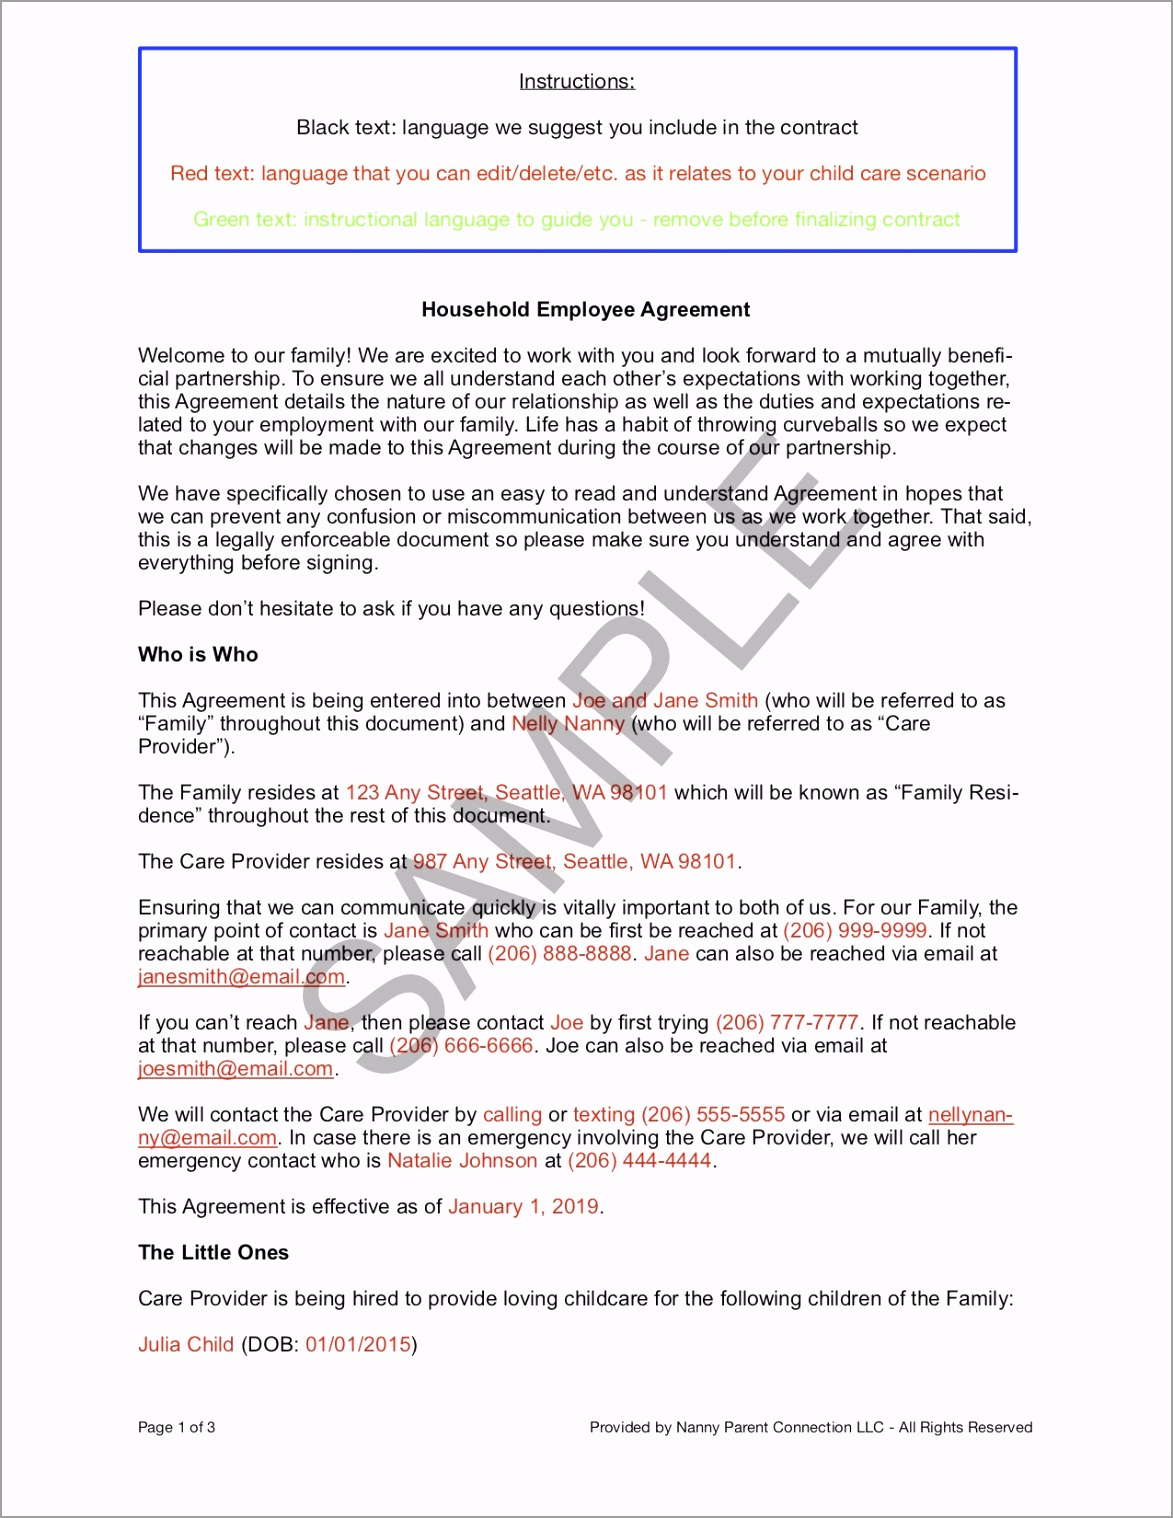 Household Employee Agreement Nanny Parent Connection LLC July 2019 Update SAMPLE Page 1 uwirr